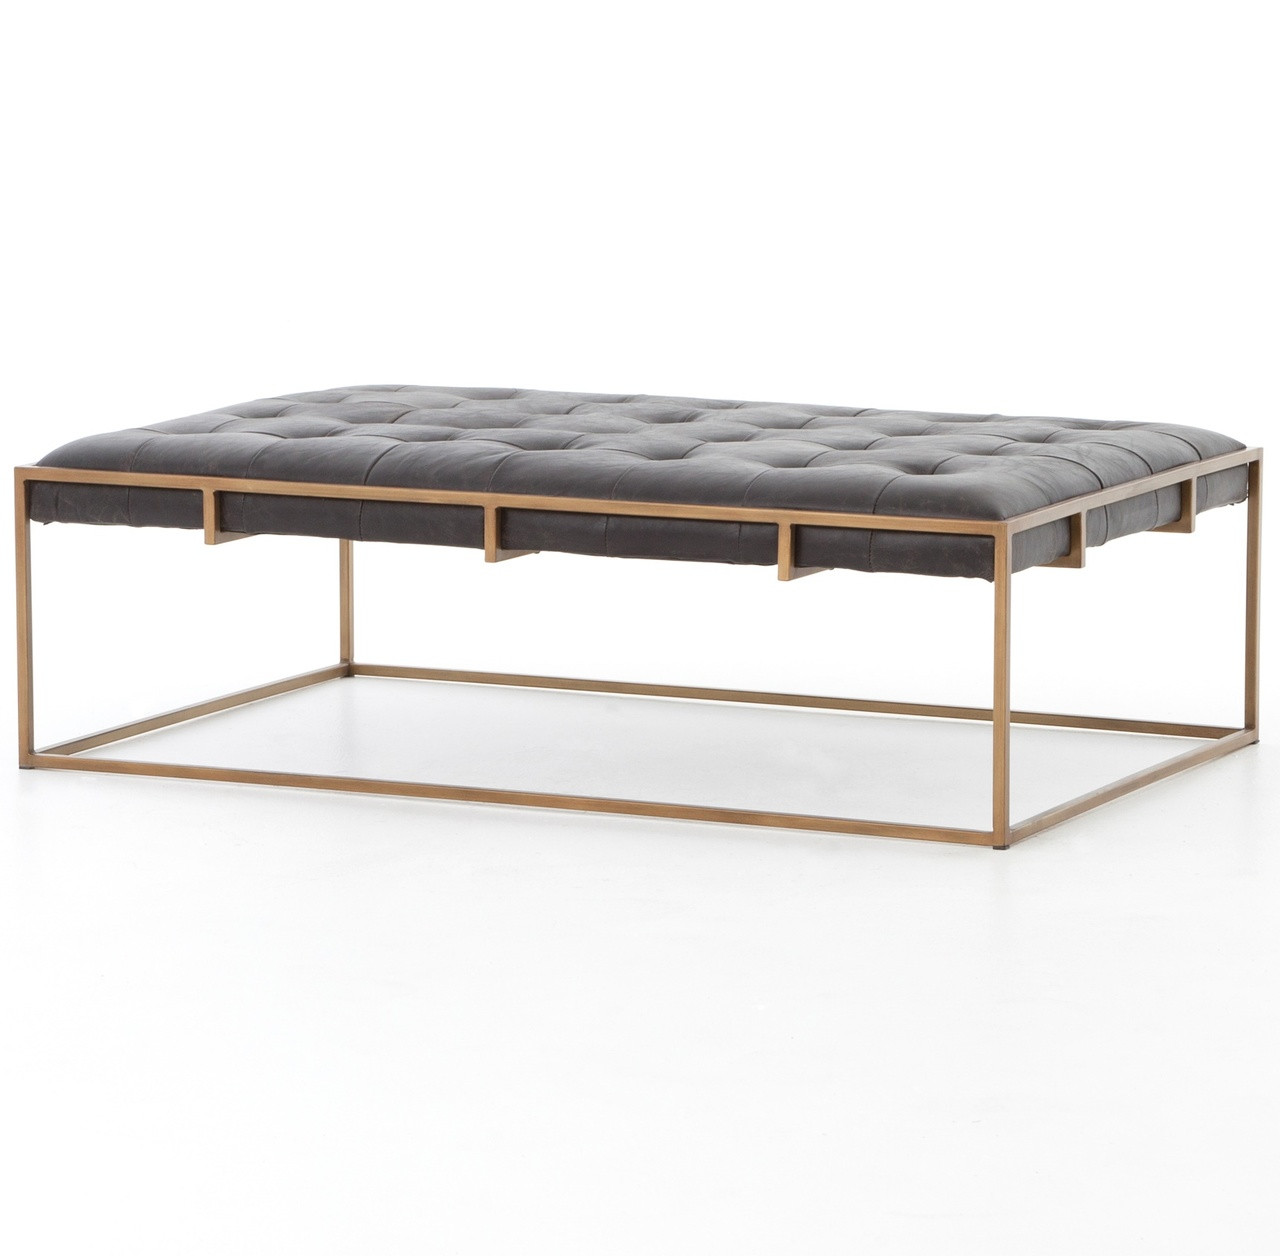 - Oxford Tufted Black Leather Ottoman Coffee Table 50